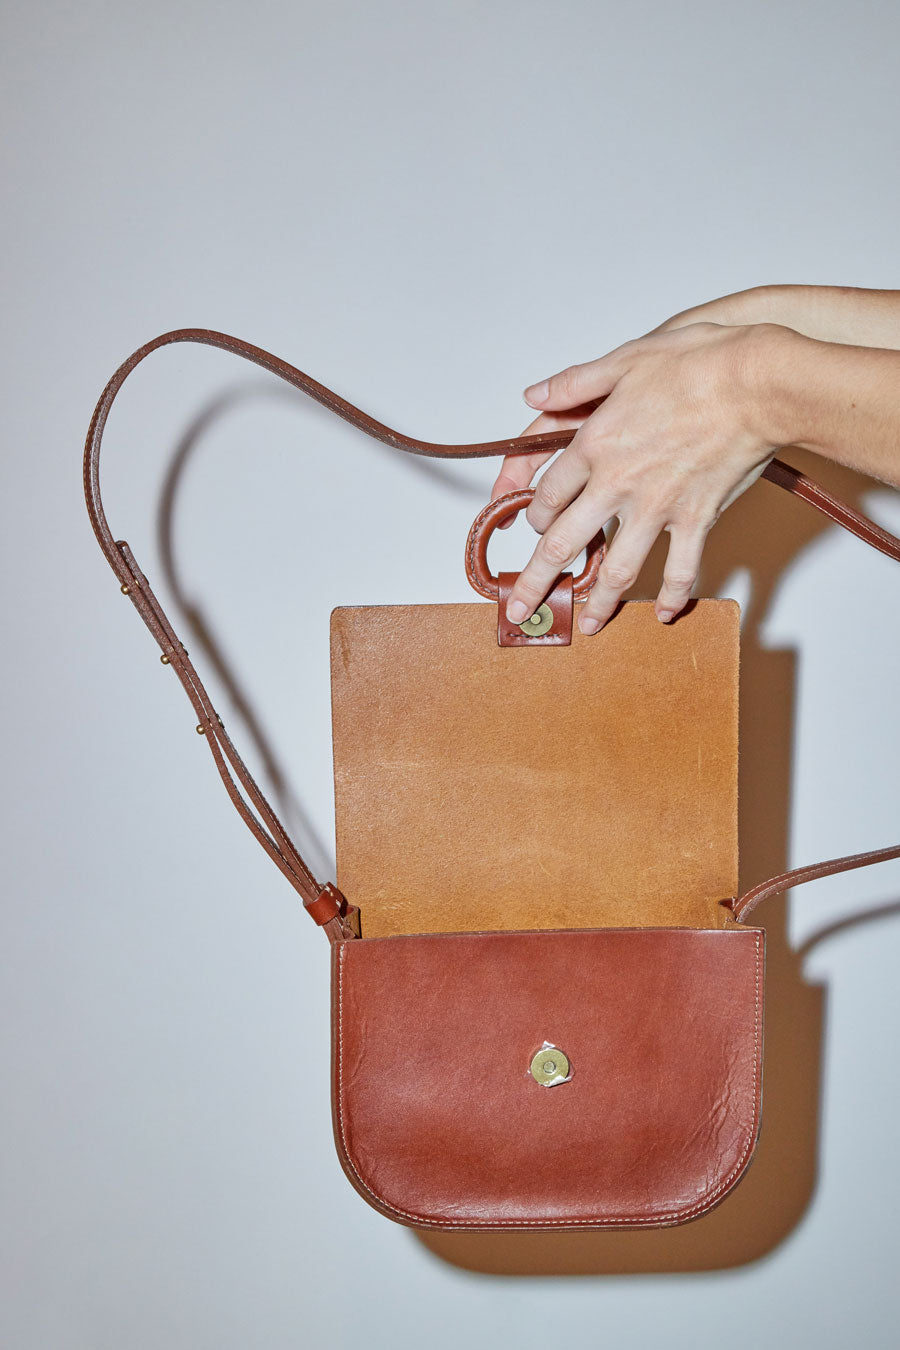 Crescioni Mini Logan Bag in Saddle Brown